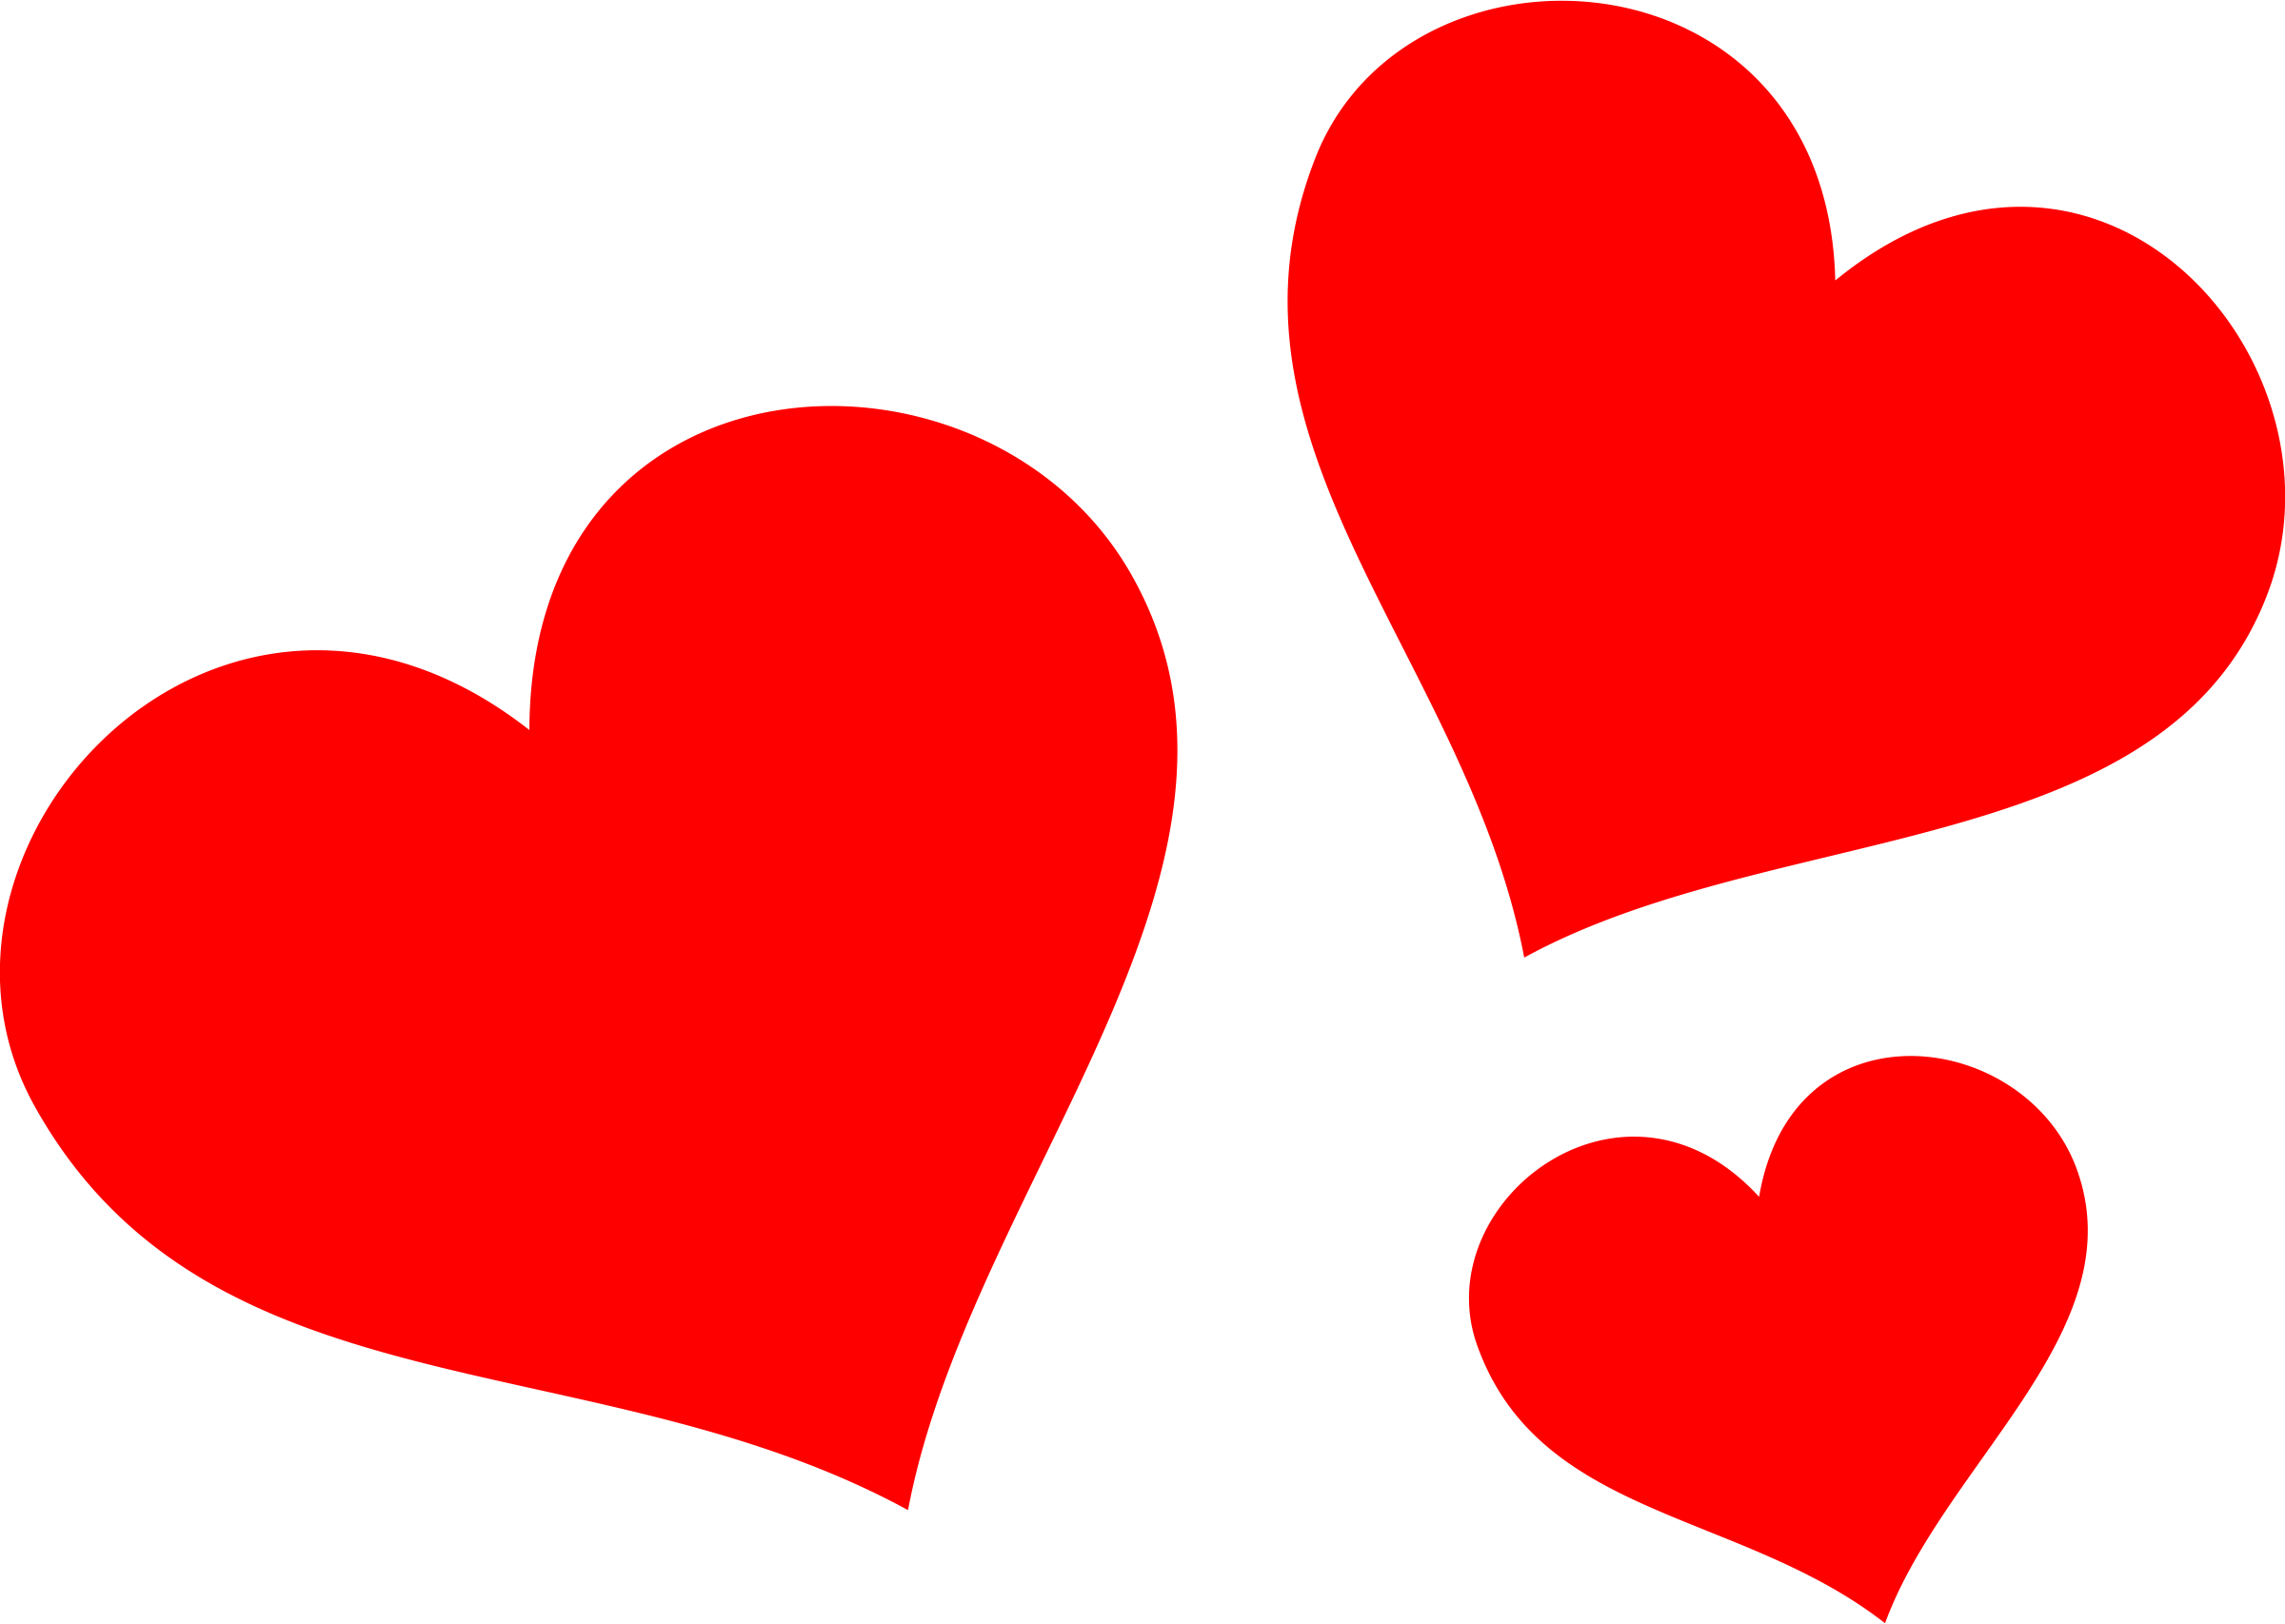 Clipart - Red Hearts